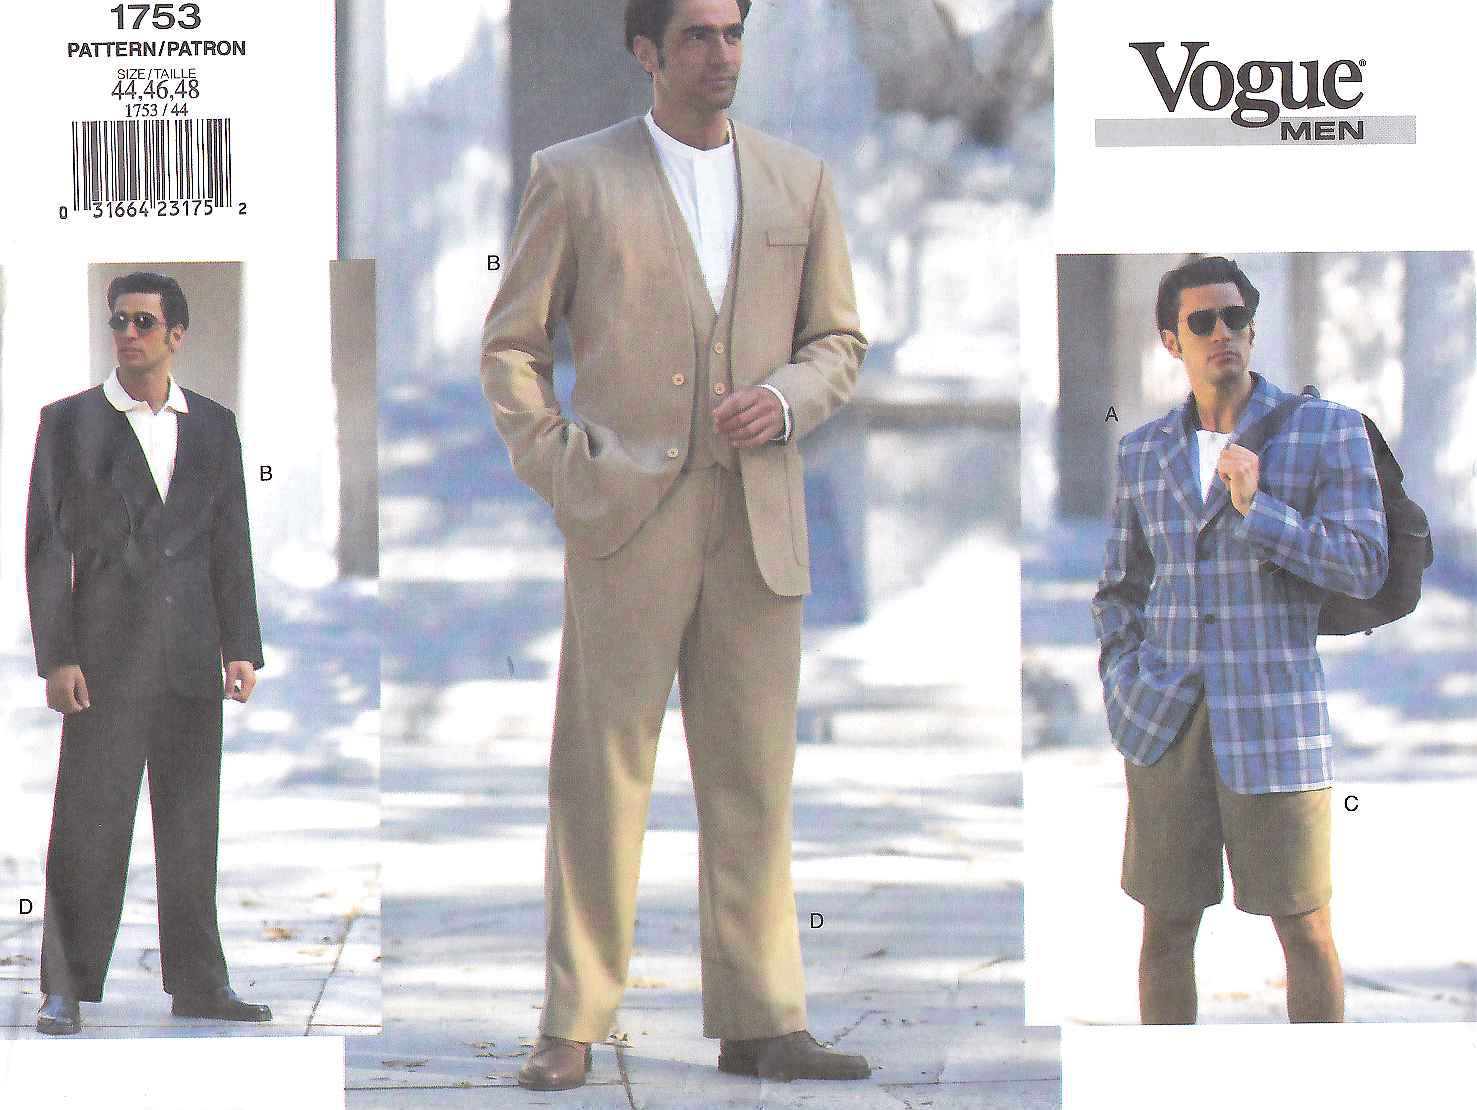 Vogue Sewing Pattern 1753 Mens Size 44-46-48 Jacket Vest Shorts Pants Trousers Sportscoat Suit